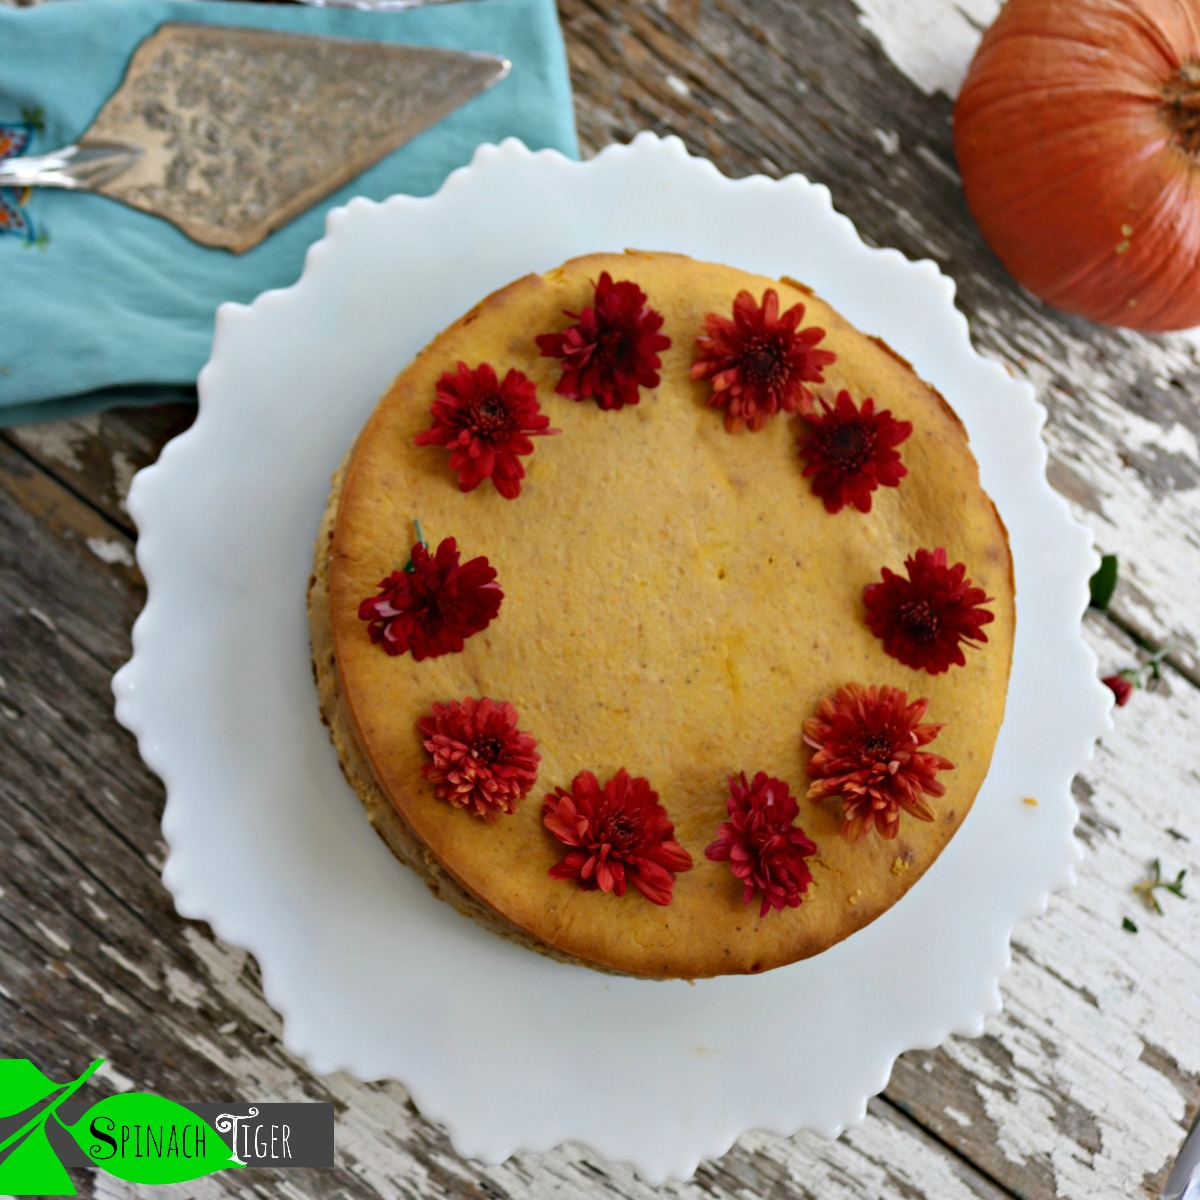 Pumpkin Low Carb Cheesecake Recipe from Spinach Tiger